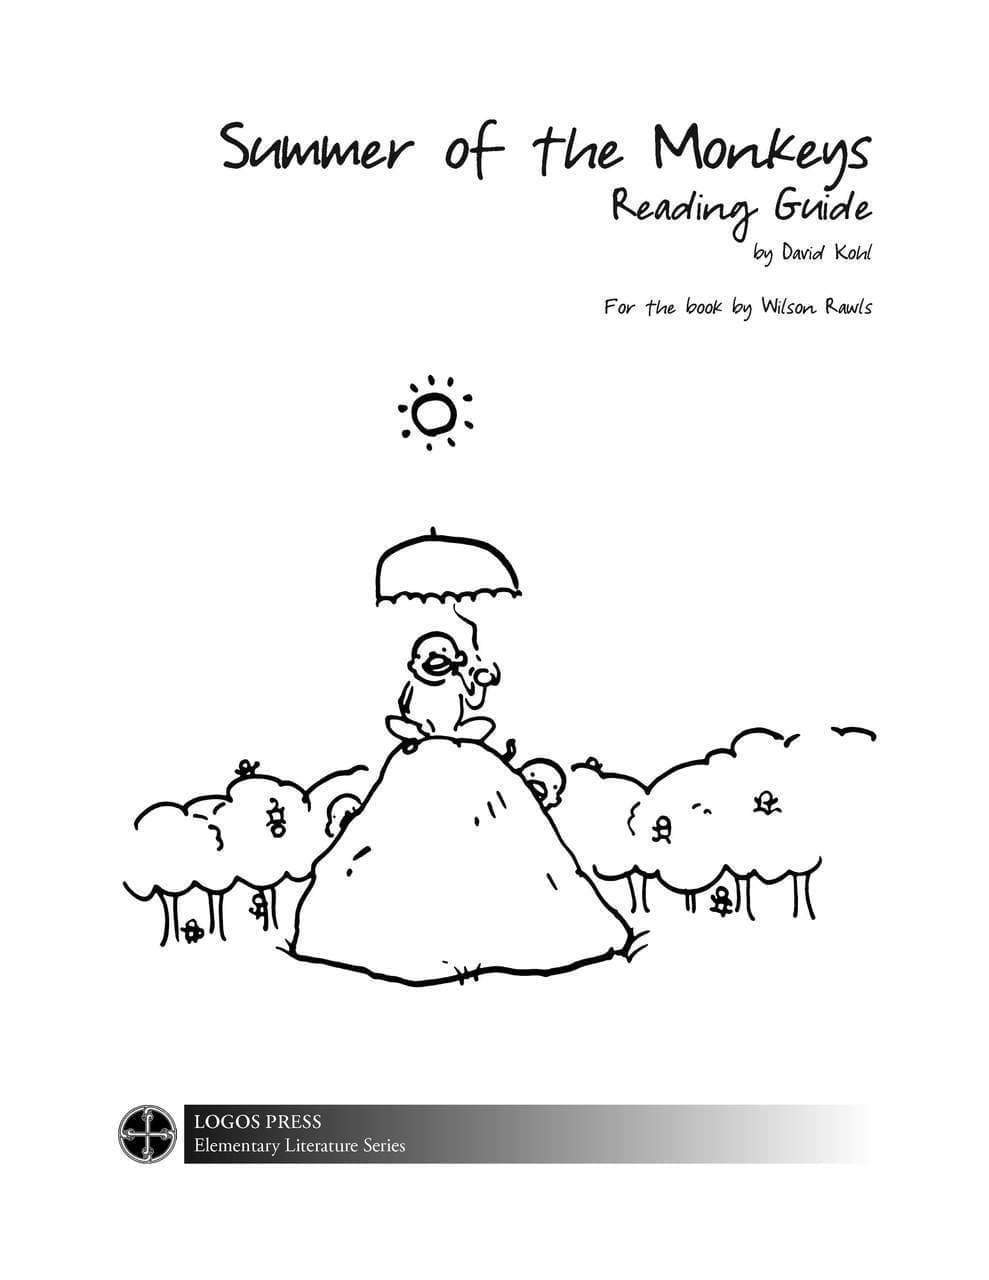 Summer of the Monkeys – Reading Guide (Download)